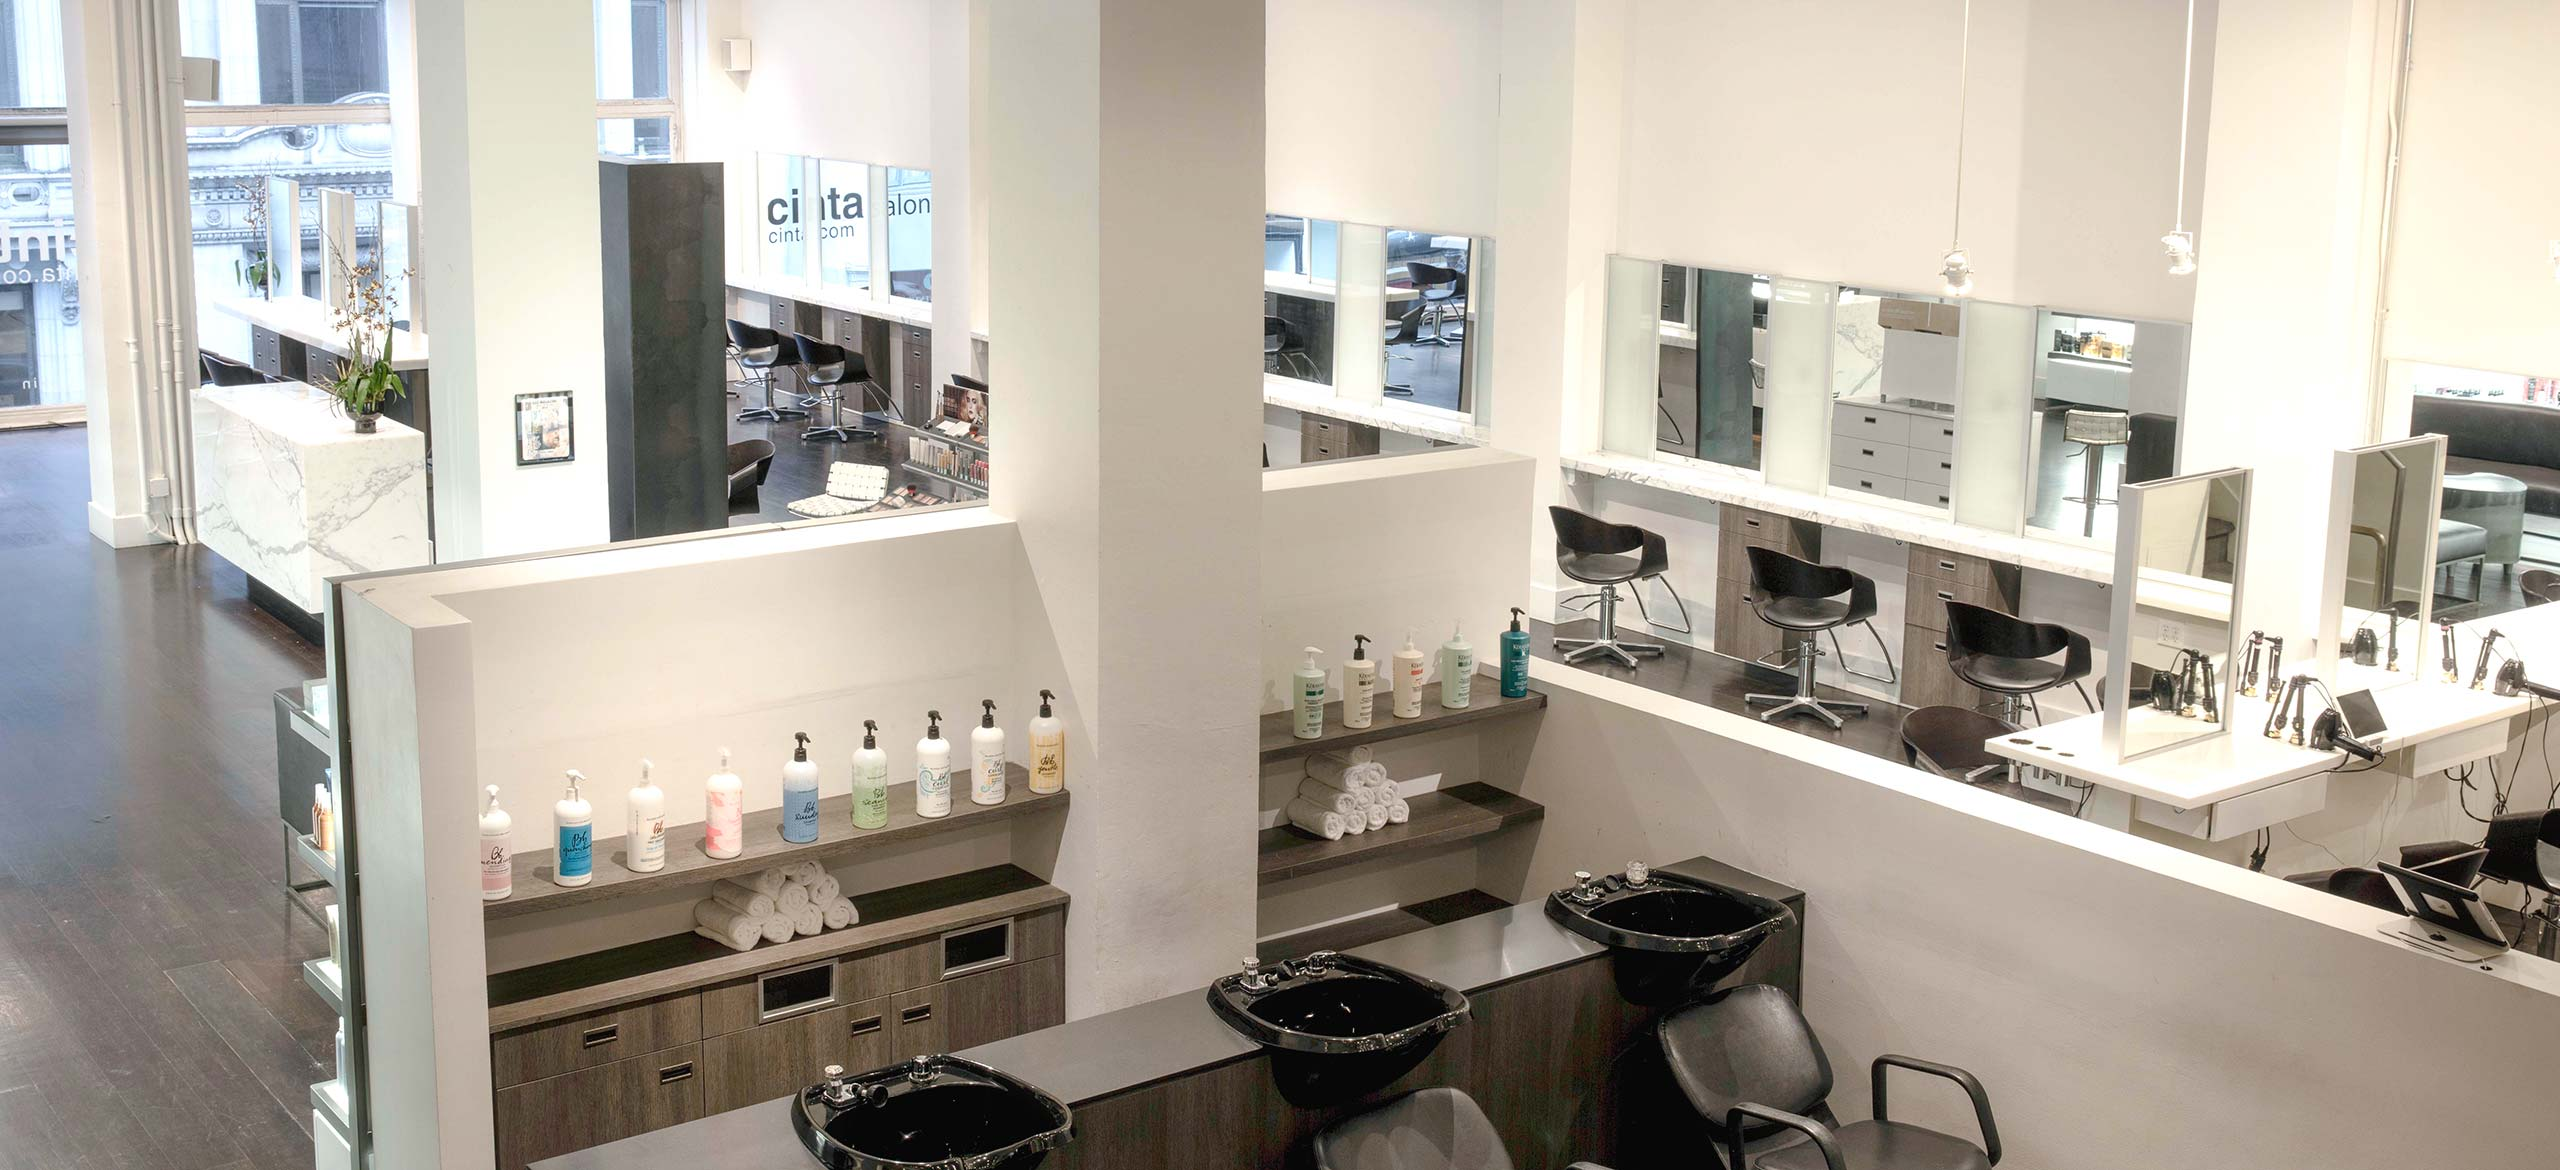 Cinta Salon - Shampoo Stations and the Salon - high view